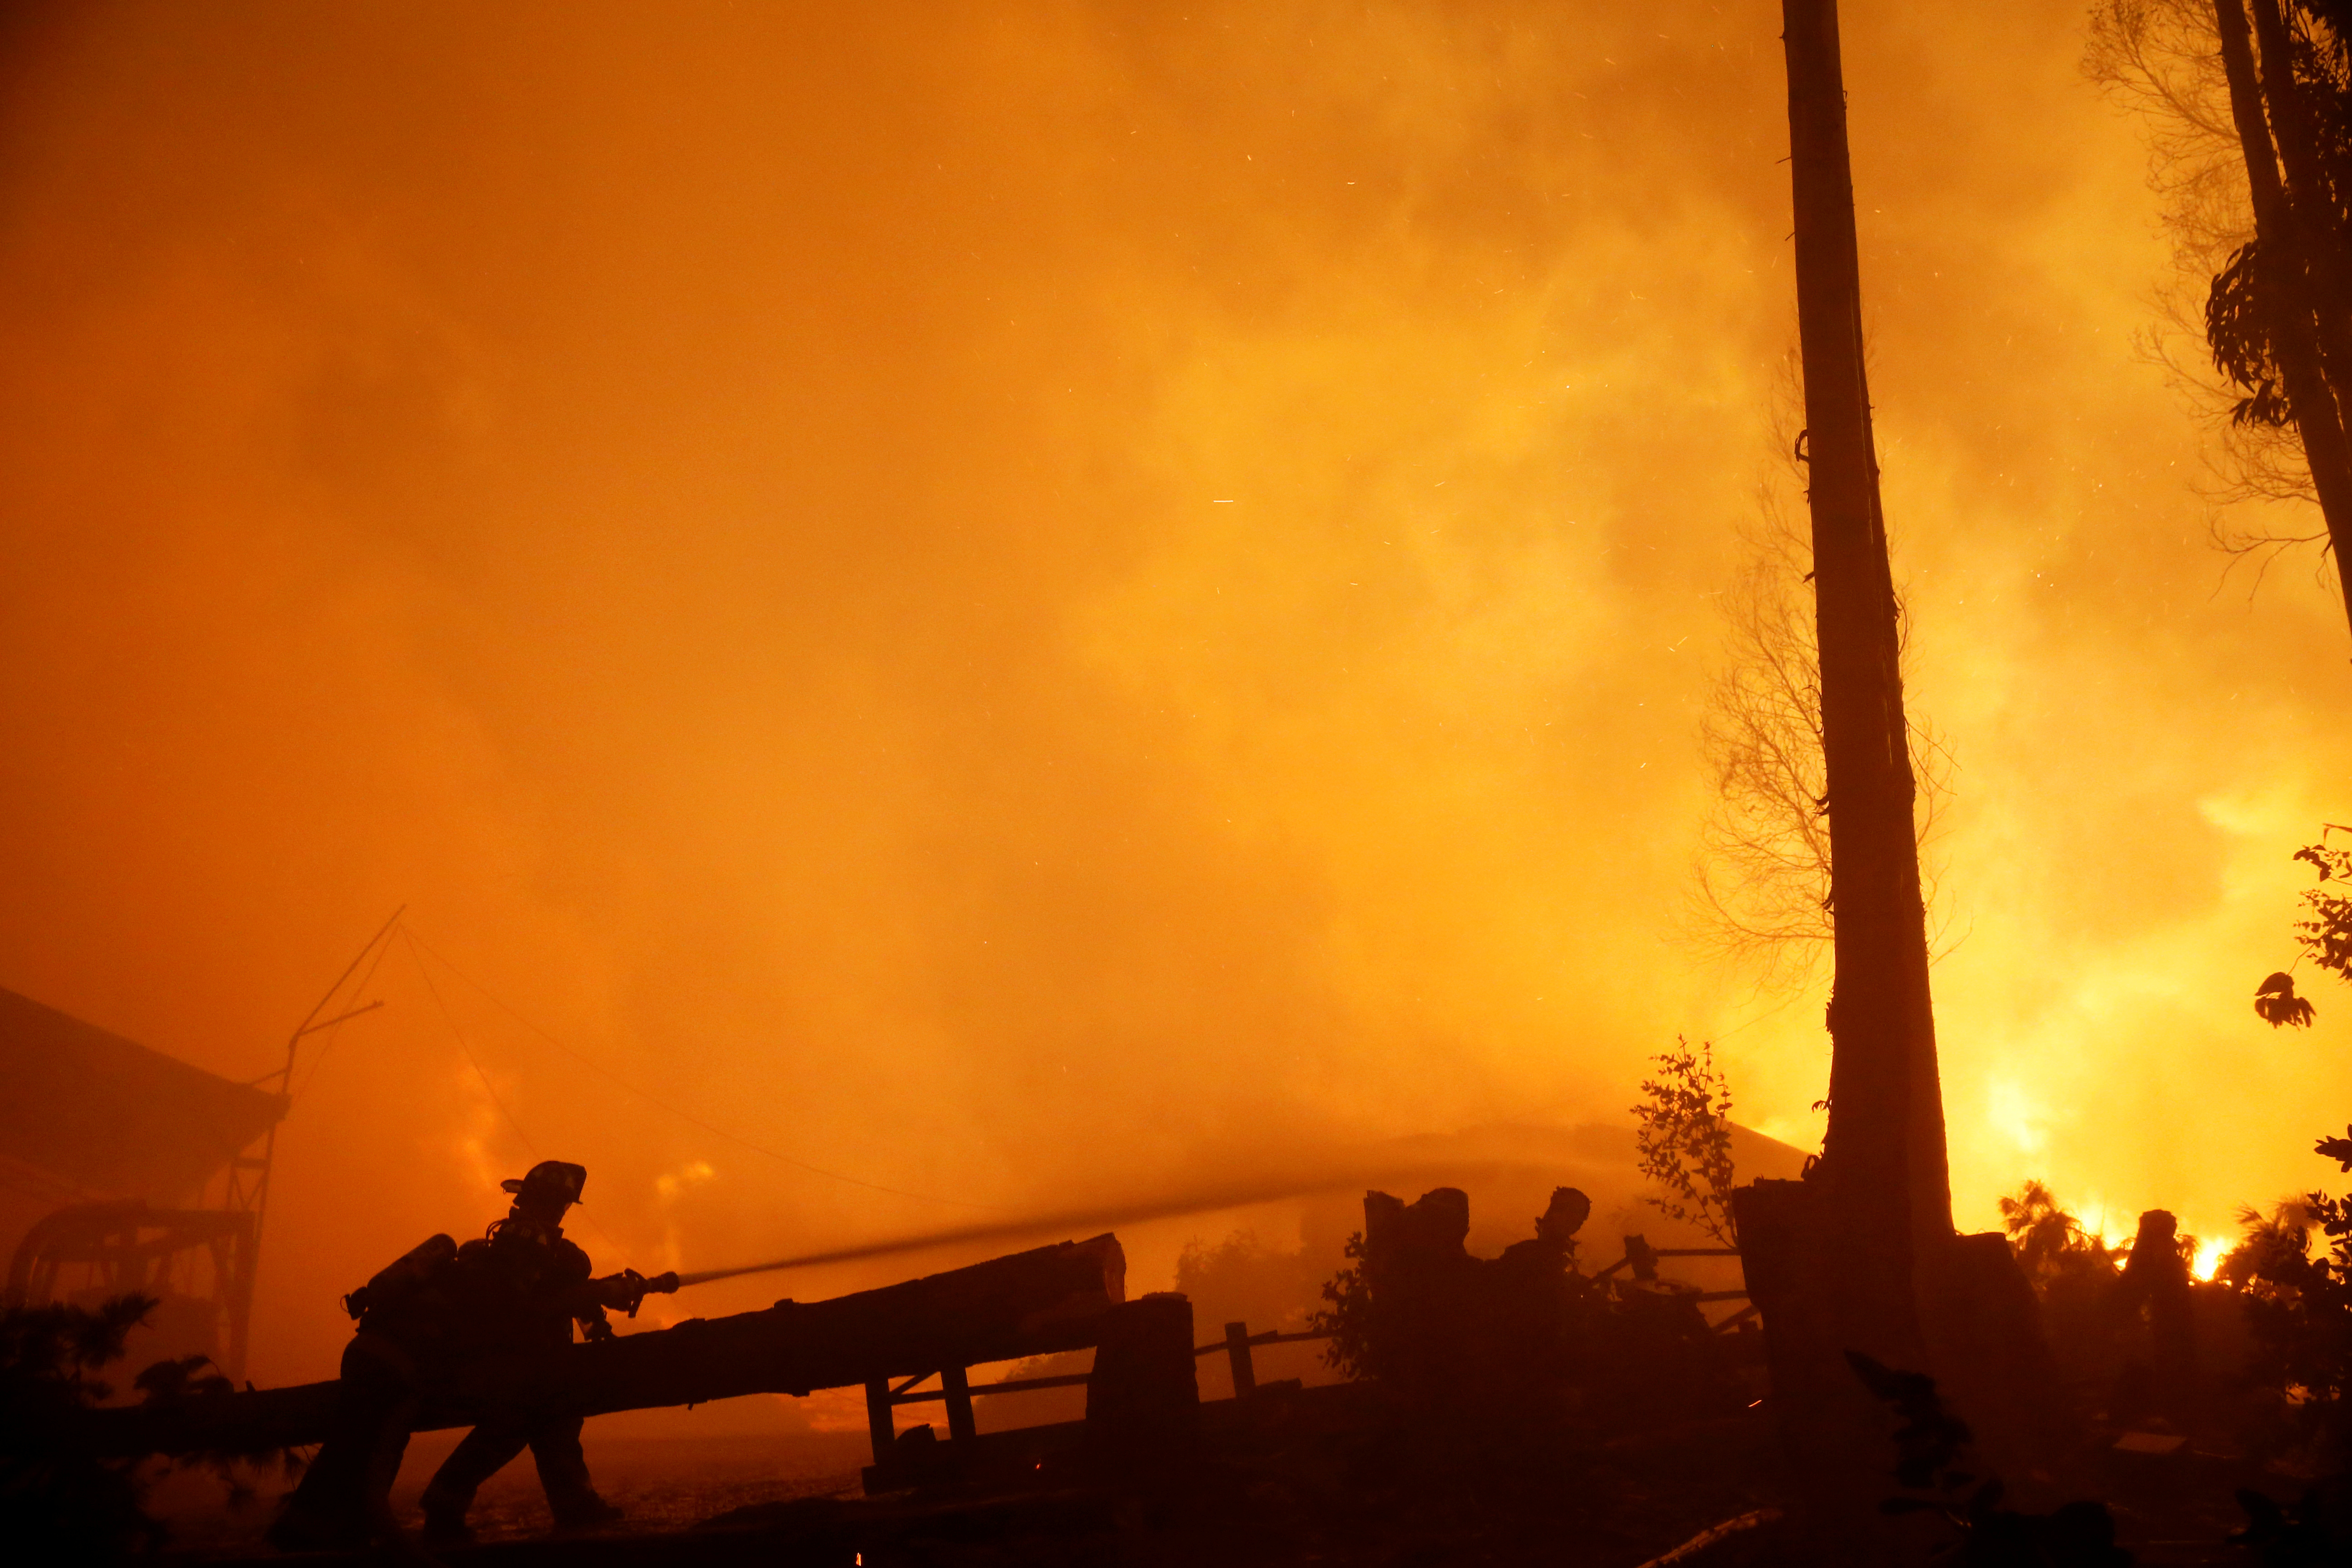 Firefighters try to stop a fire as the worst wildfires in Chile's modern history ravage wide swaths of the country, in Santa Olga, Chile Jan. 26, 2017.